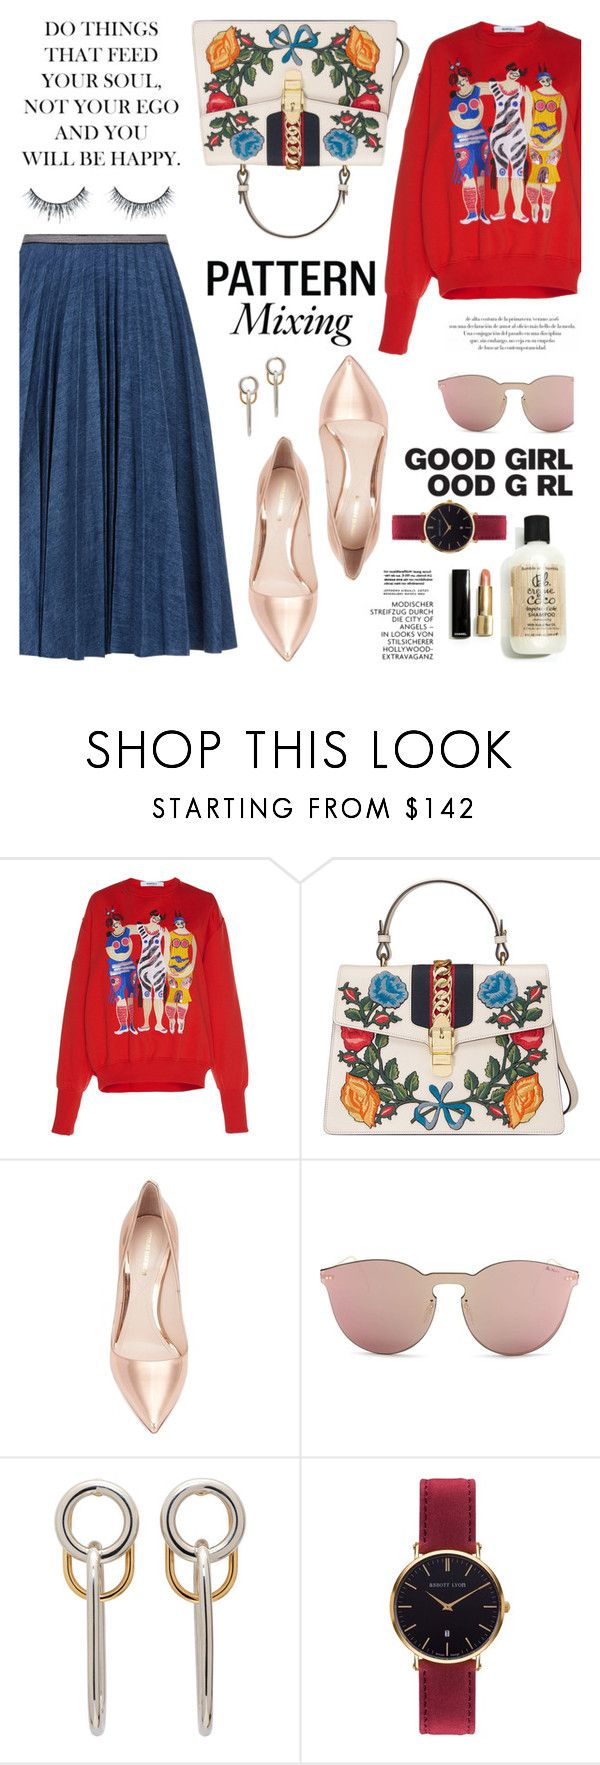 """""""But there is blood on my hands, and my lips are unclean"""" by liquidvisions ❤ liked on Polyvore featuring Leur Logette, Gucci, Nicholas Kirkwood, Illesteva, Alexander Wang and Abbott Lyon"""